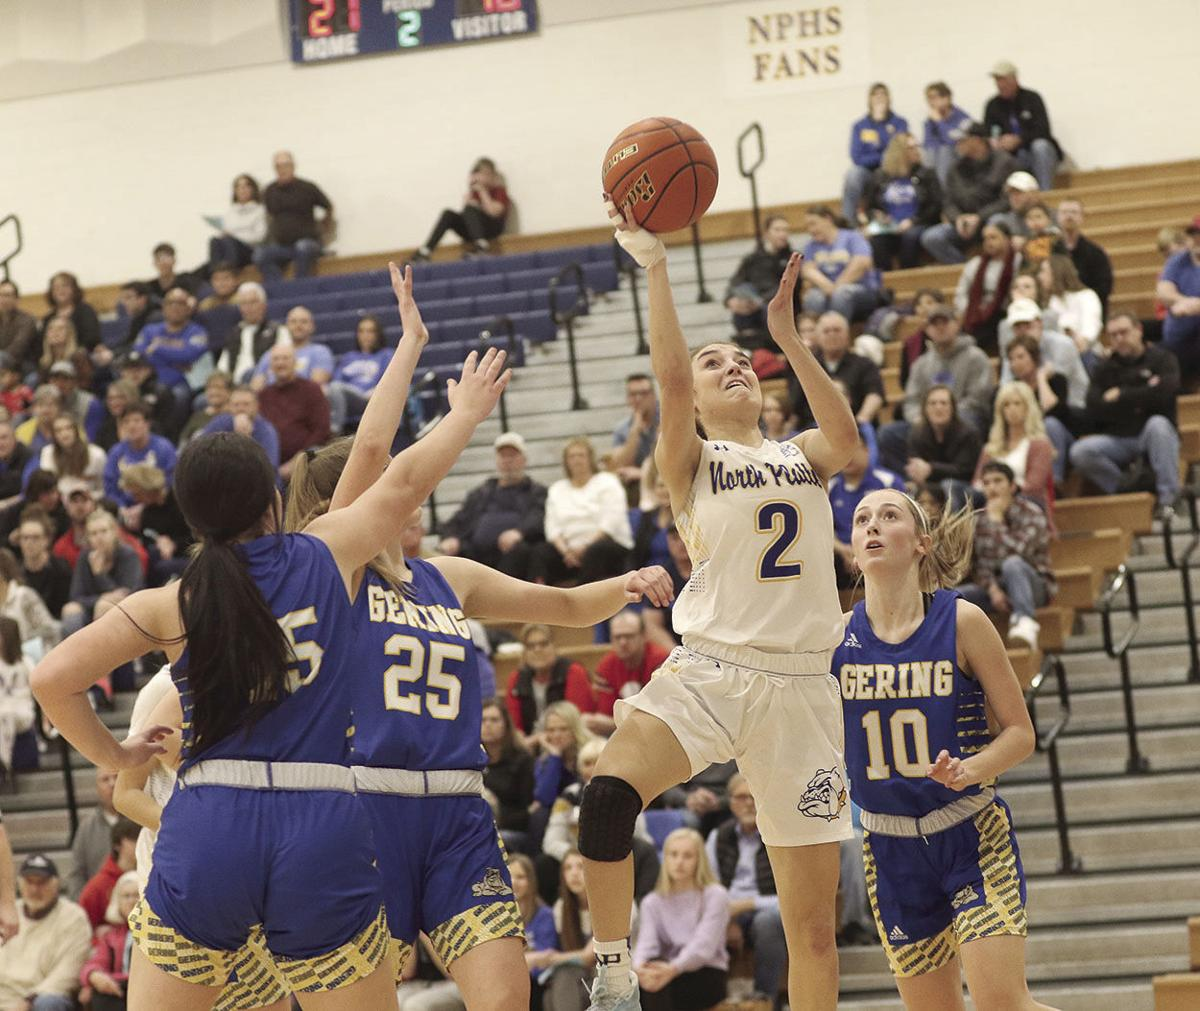 North Platte sweeps Gering, Haneborg reaches 1,000-point mark